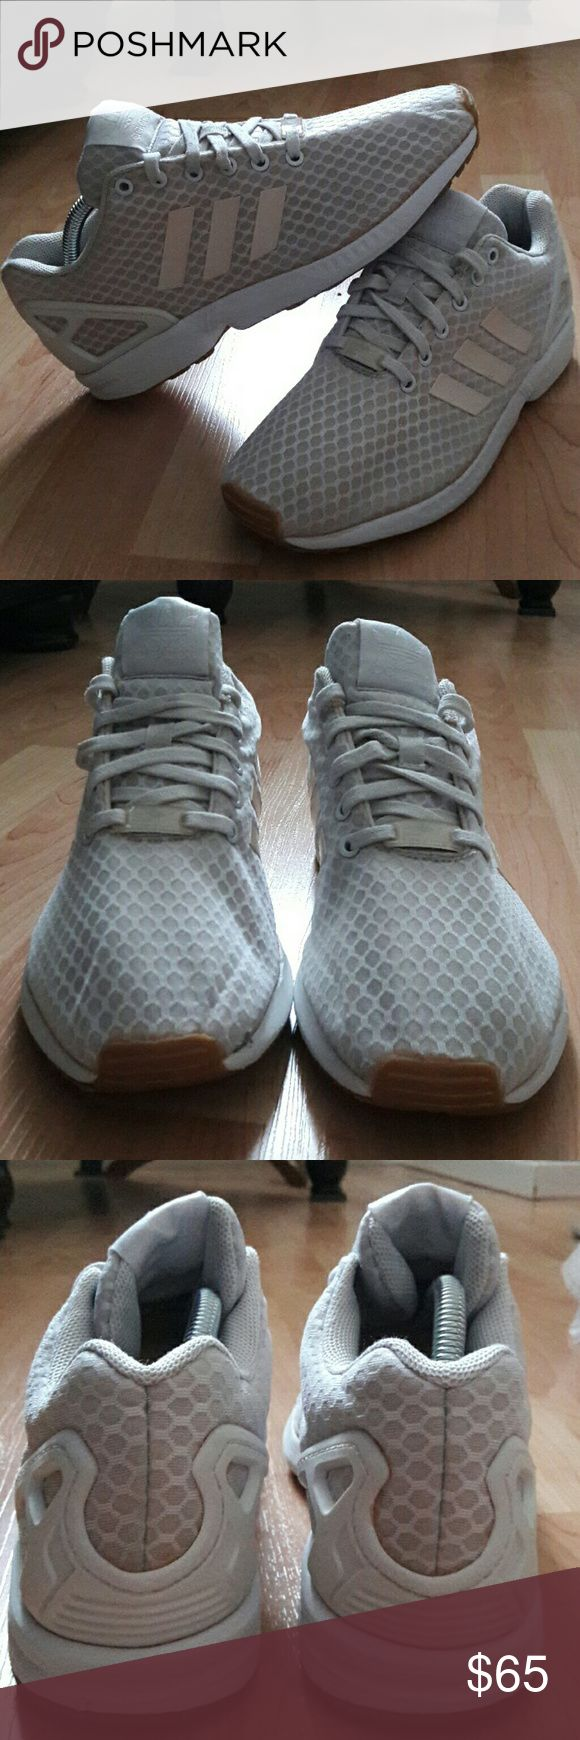 adidas?- ZX Flux Shoes? In good condition   Checkout my listings for more awesome stuff! Adidas Shoes Athletic Shoes